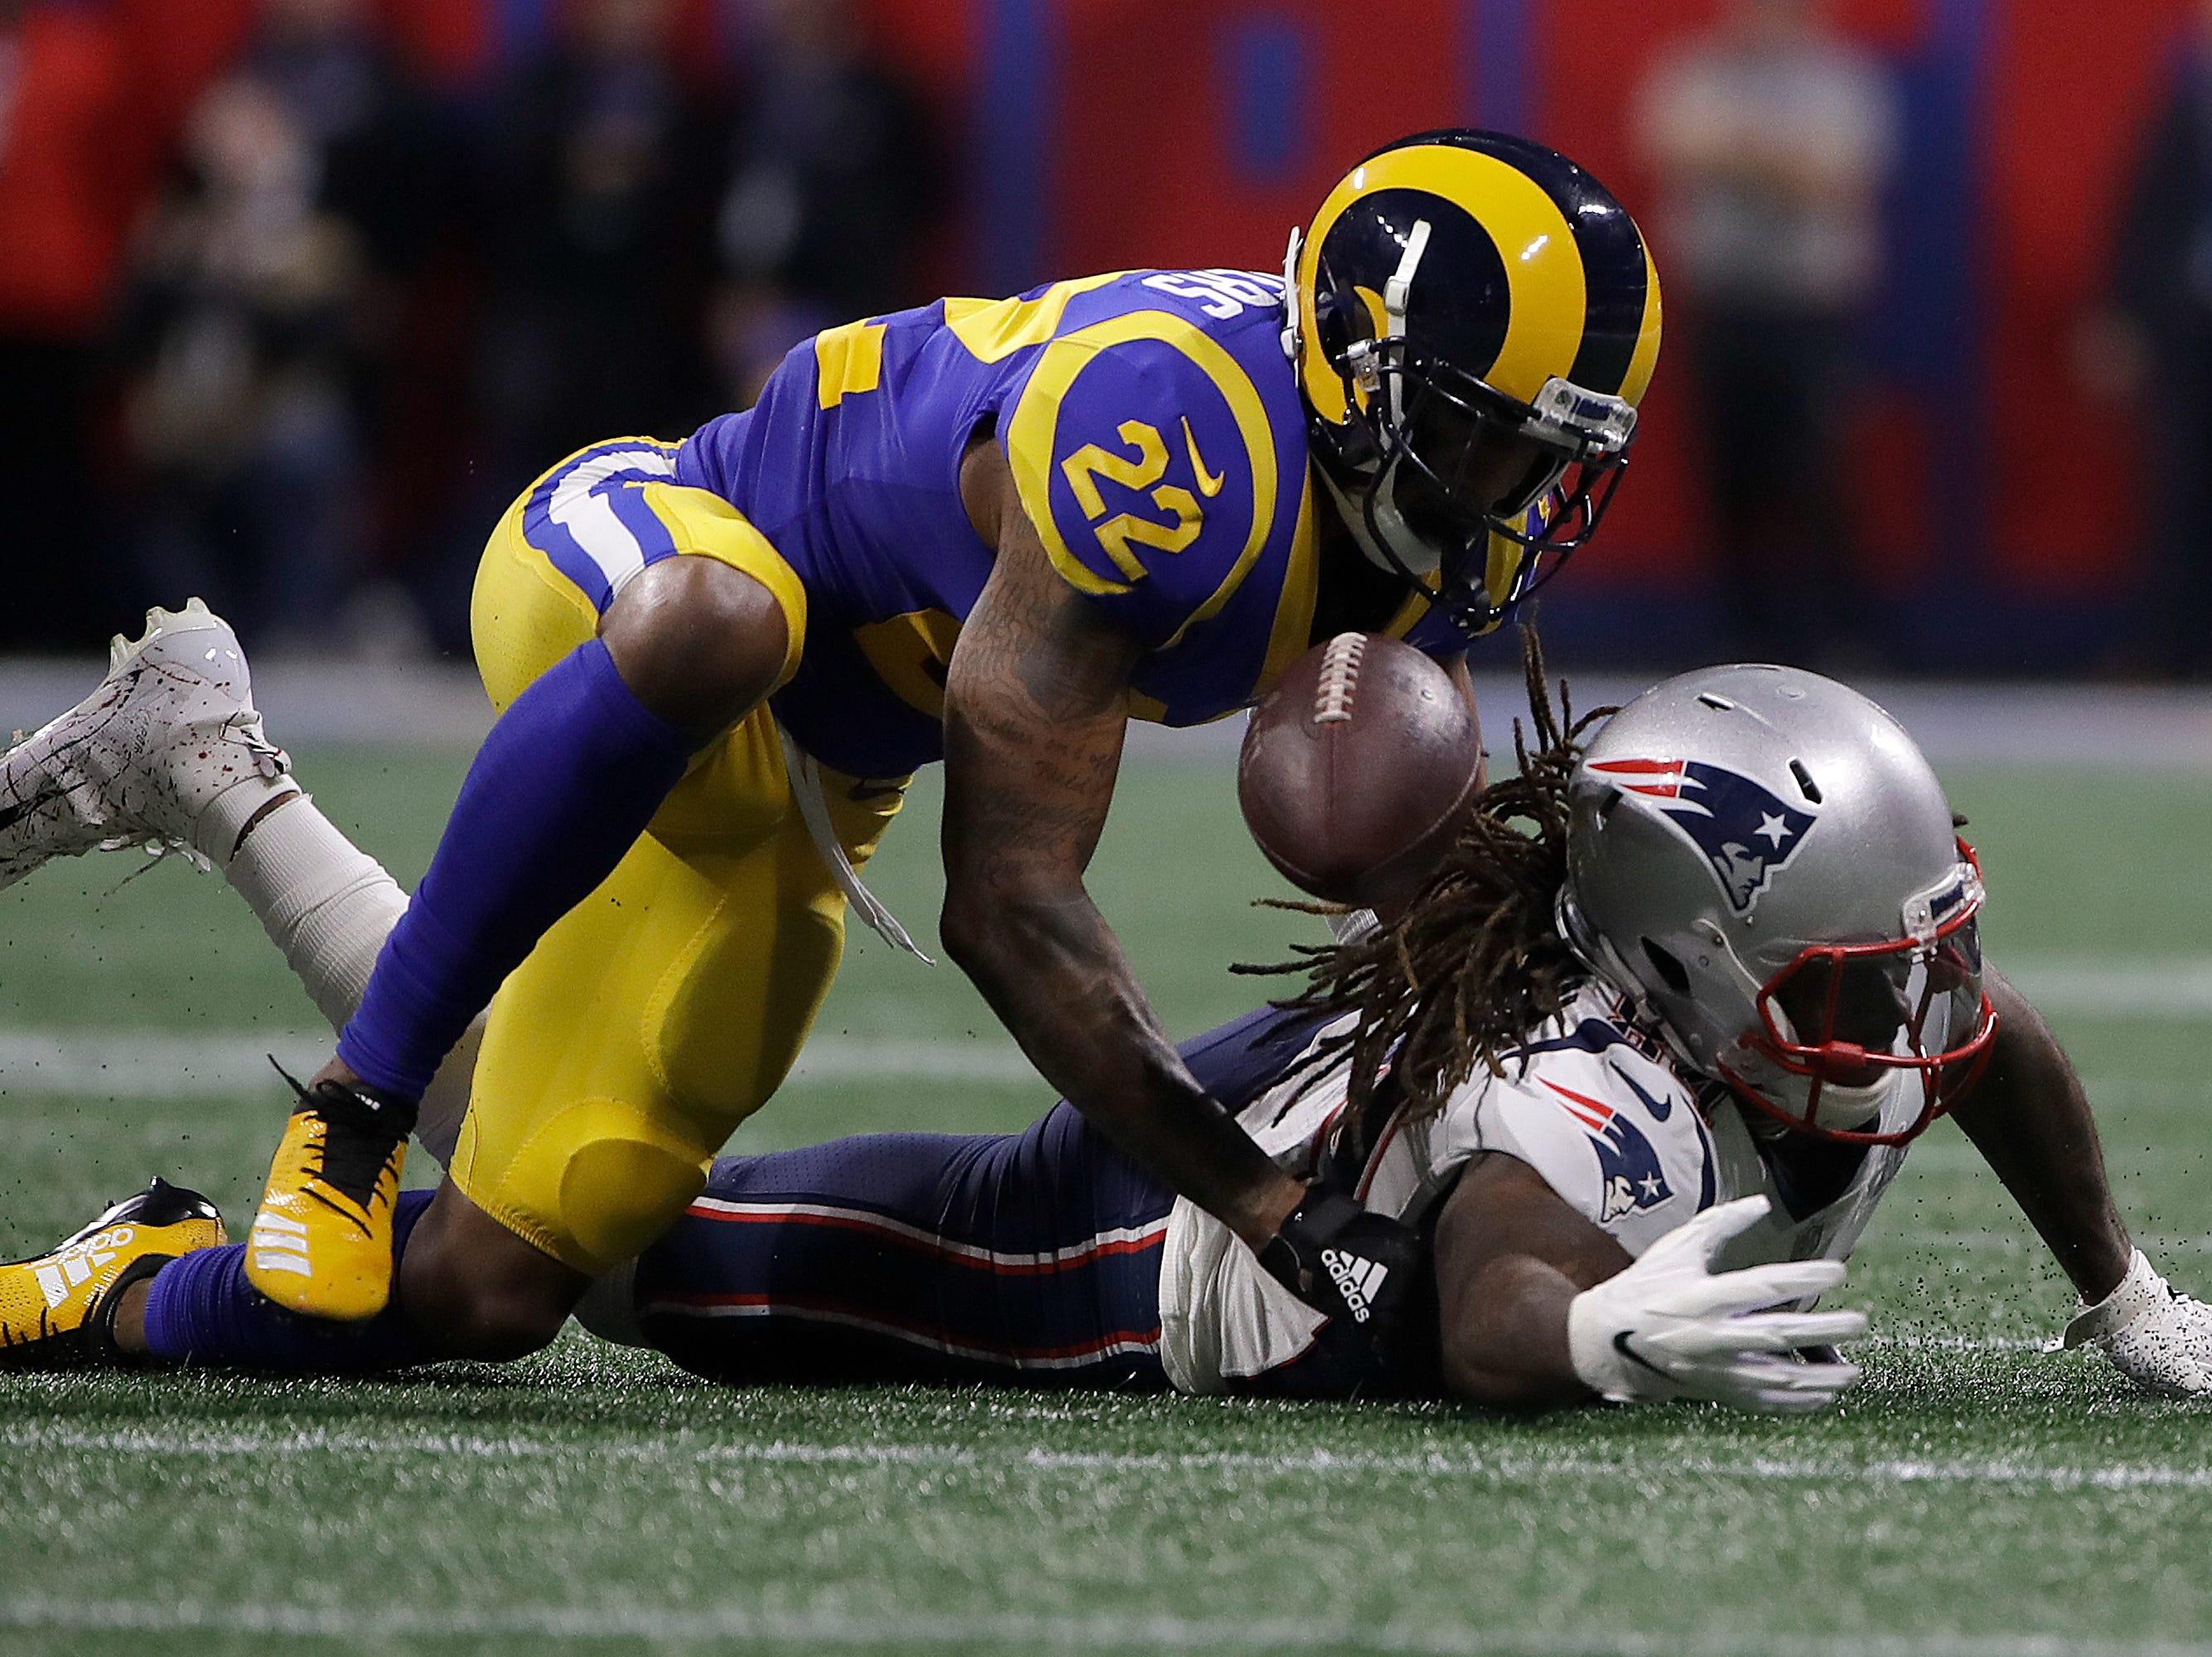 New England Patriots' Cordarrelle Patterson, bottom, reaches for the ball under Los Angeles Rams' Marcus Peters (22) during the first half.